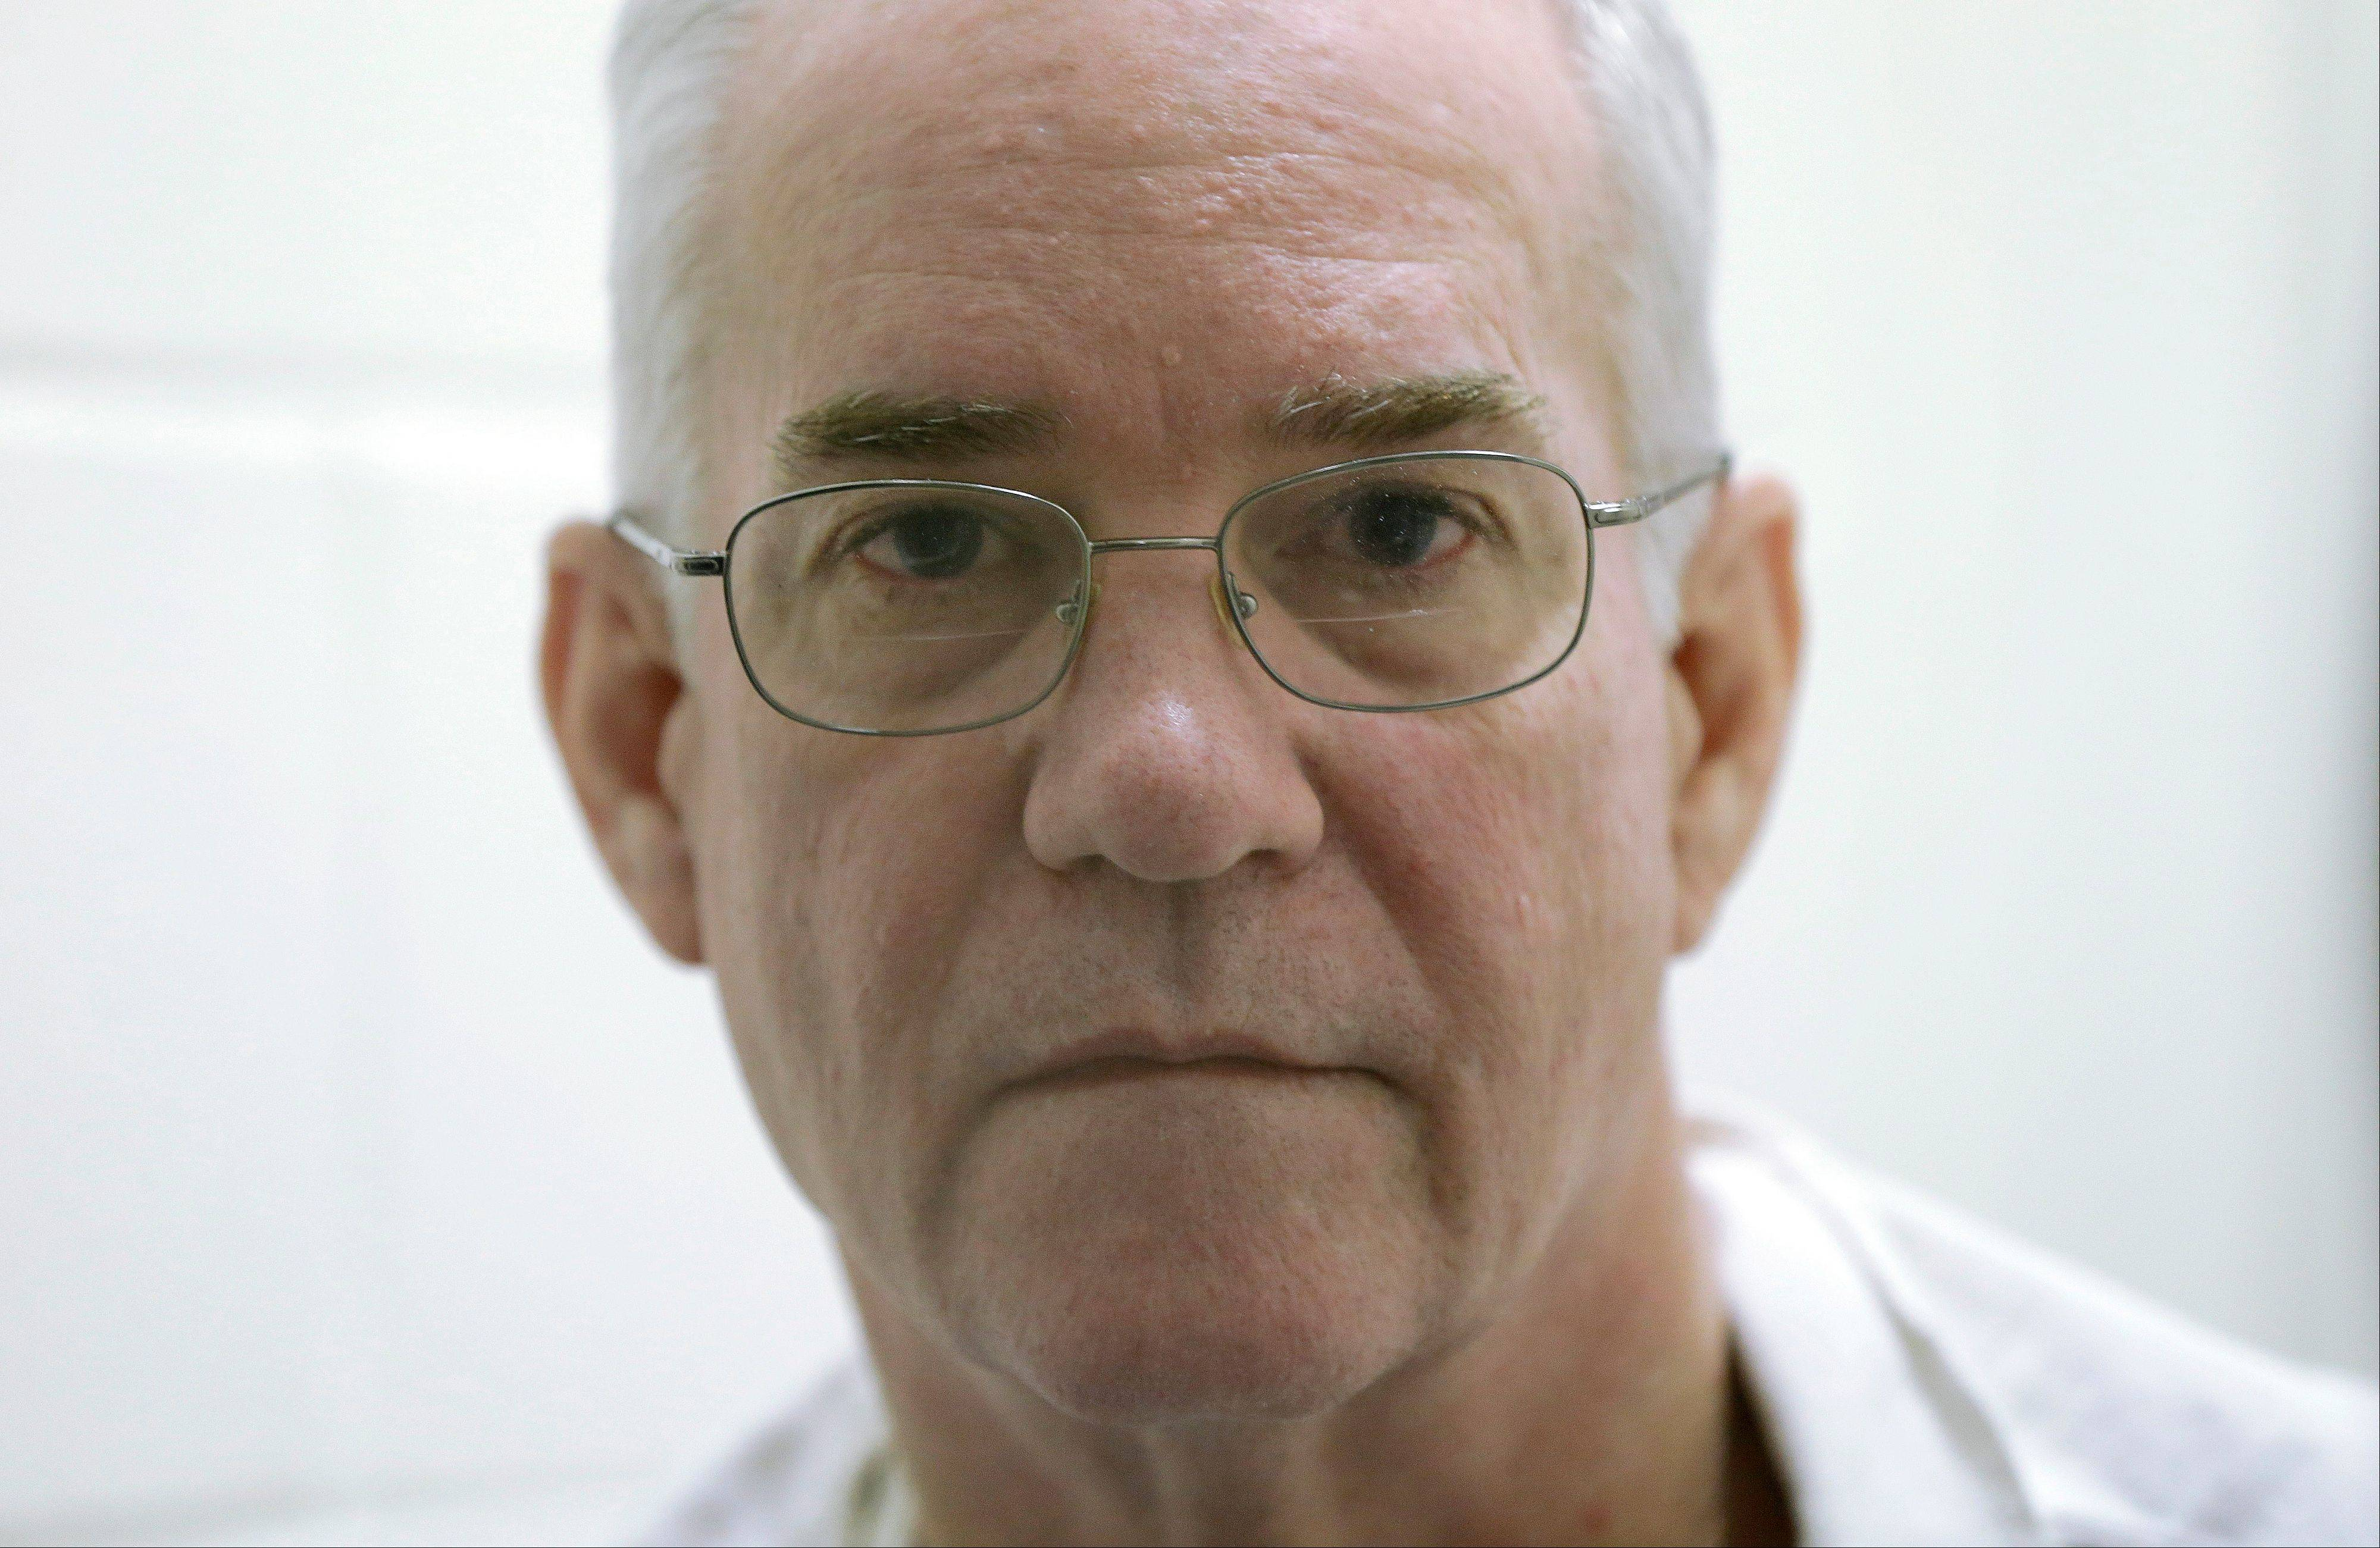 Despite his pleas of innocence, Ed Graf was given life in prison 25 years ago for killing his two stepsons by locking them in a backyard shed and setting it on fire, based on expert testimony and conclusions that have largely been disavowed by the state fire marshal. A state district judge has recommended a new trial and the state Court of Criminal Appeals is considering whether to grant the request for Graf.